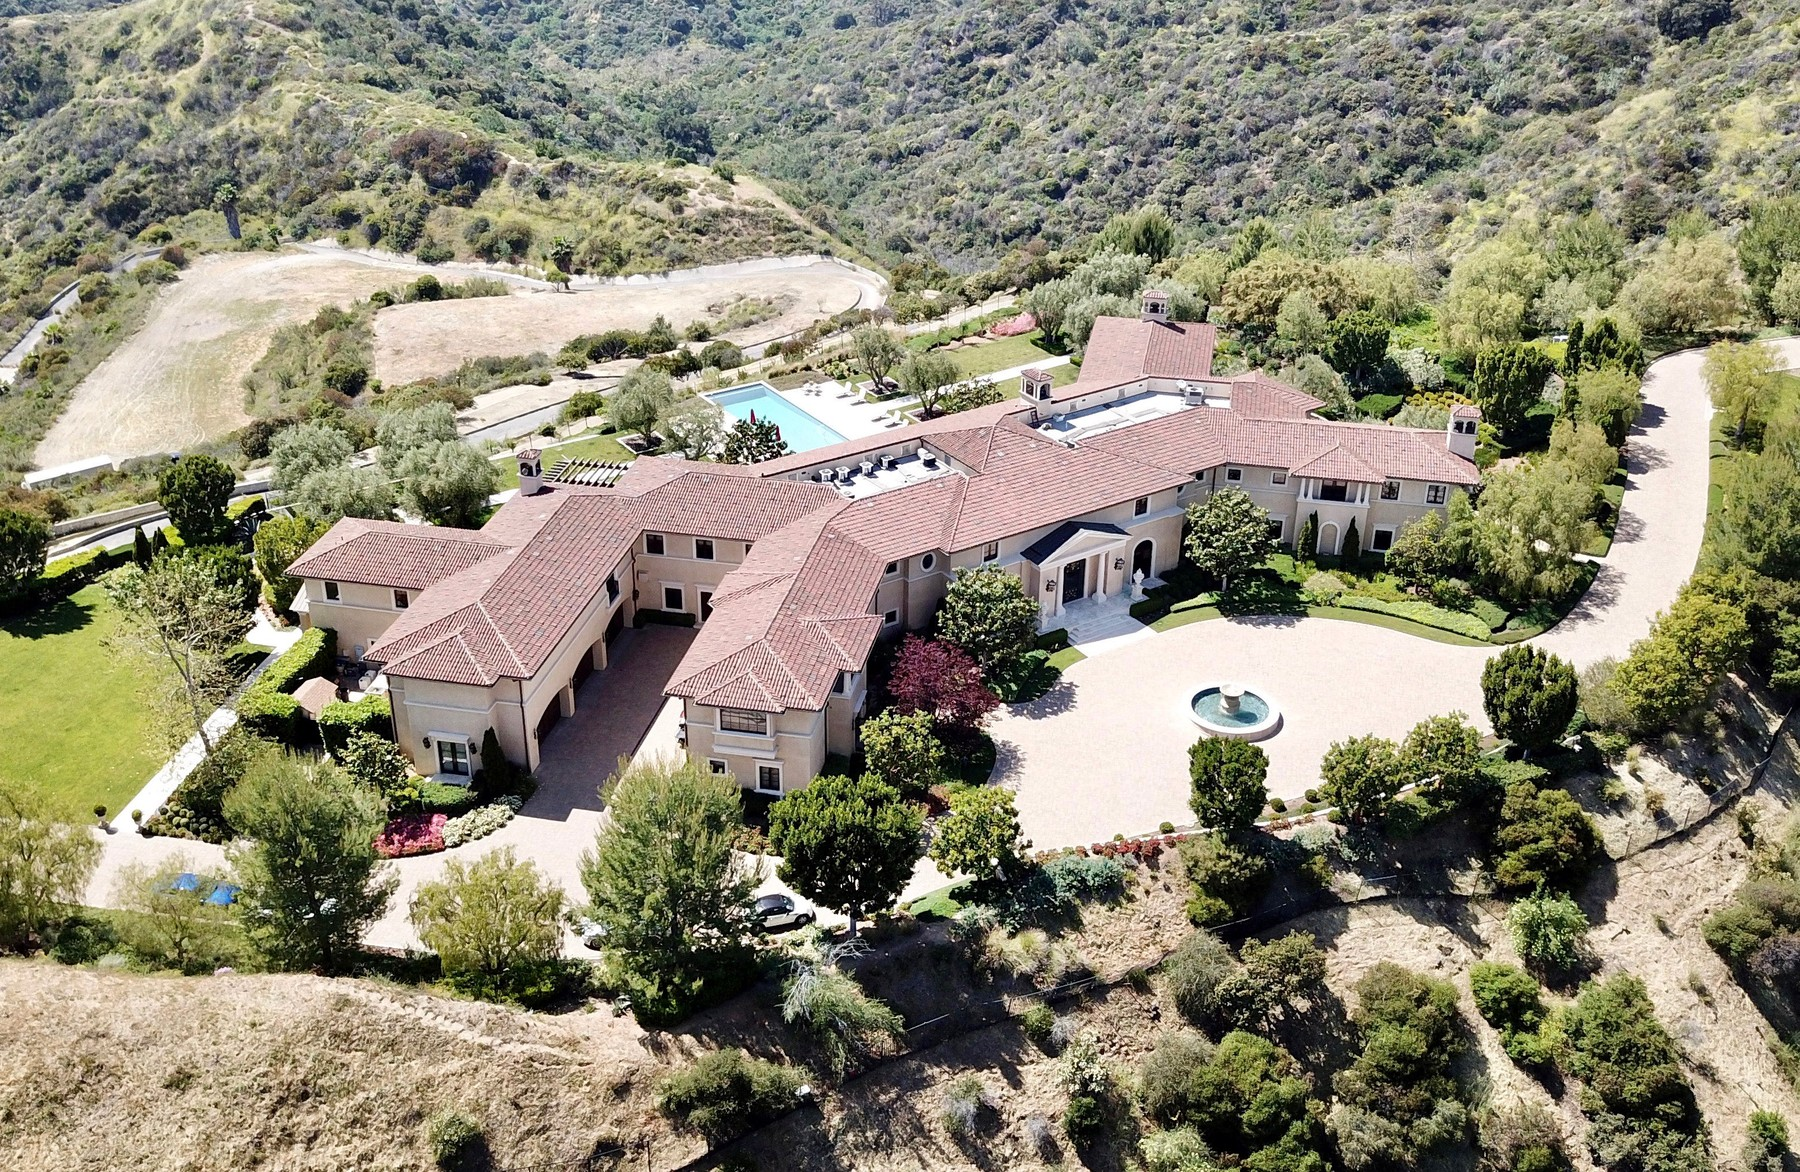 05/07/2020 GV: Meghan Markle and Prince Harry are reportedly staying at the  million dollar mansion owned by Tyler Perry in Los Angeles. The 25,000 square foot mega mansion features 8 bedrooms and 12 bathrooms and is tucked away in the mountains above Beverly Hills and lies at the back of a 24/7 guard-gated community known as Beverly Ridge Estates.    **AERIAL VIDEO AVAILABLE**, Image: 518019403, License: Rights-managed, Restrictions: NO usage without agreed price and terms. Please contact sales@theimagedirect.com, Model Release: no, Credit line: TheImageDirect.com / The Image Direct / Profimedia